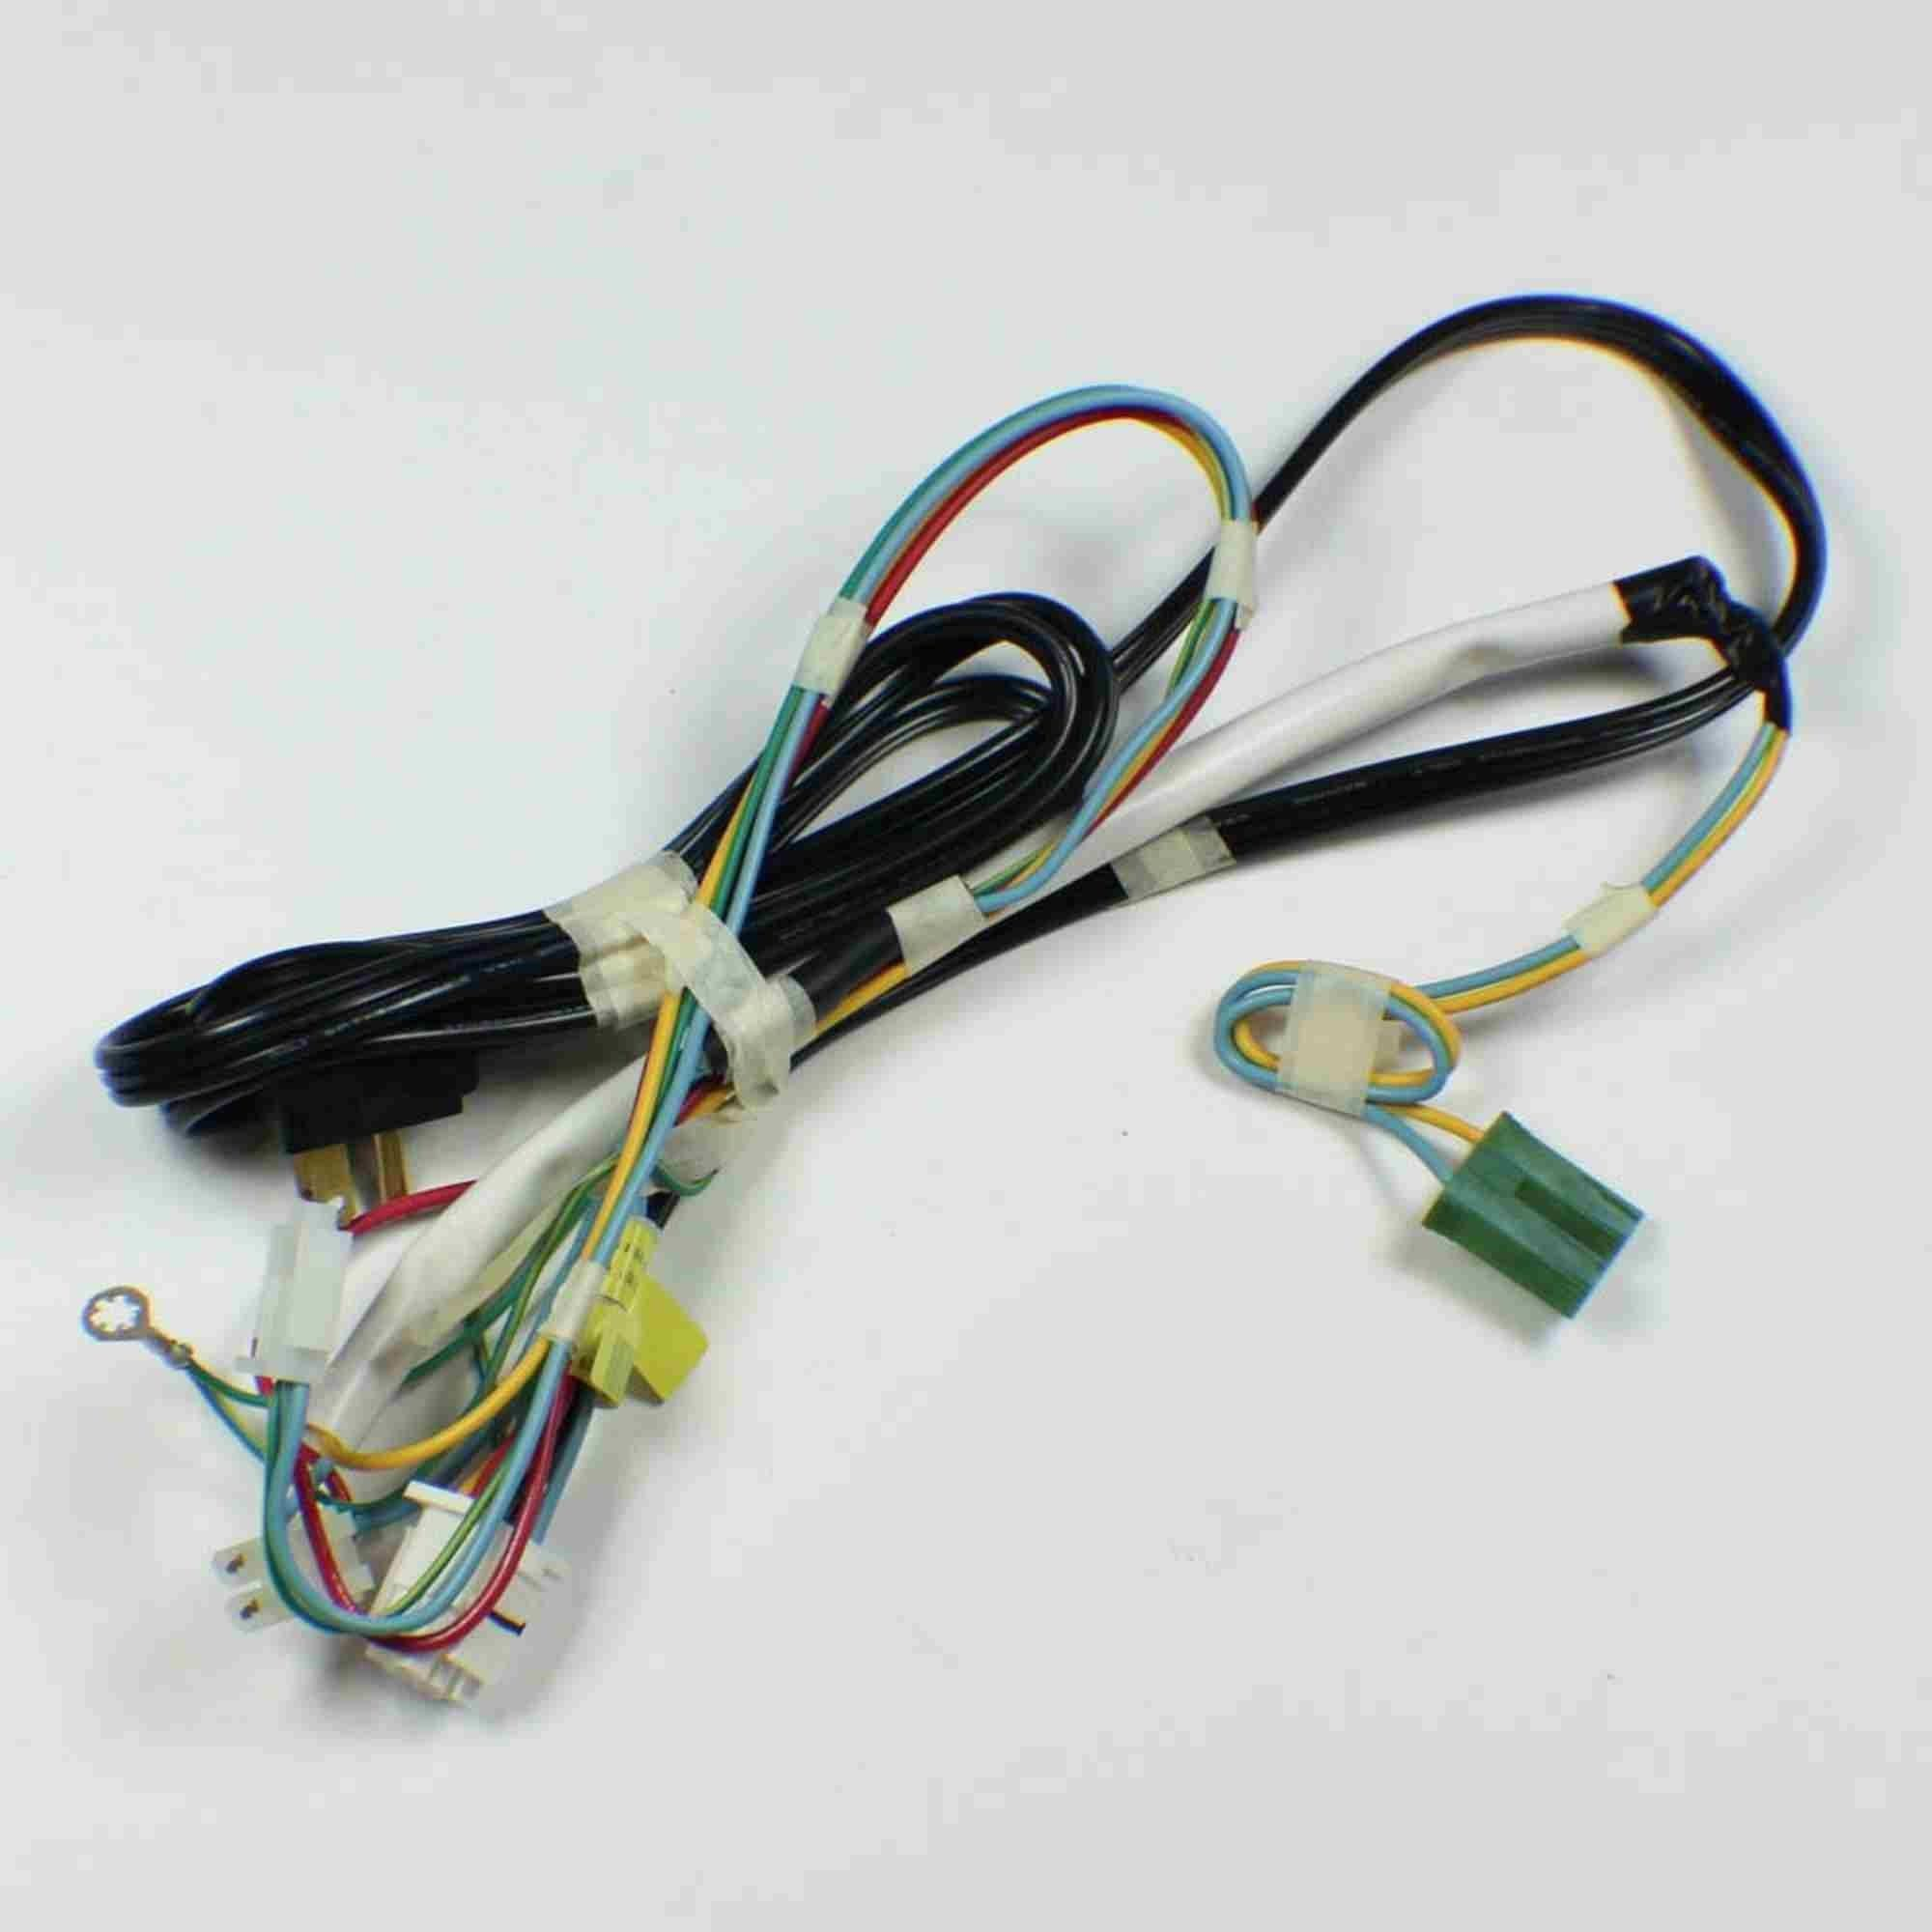 242019701 For Frigidaire Refrigerator Wire Harness Appliance